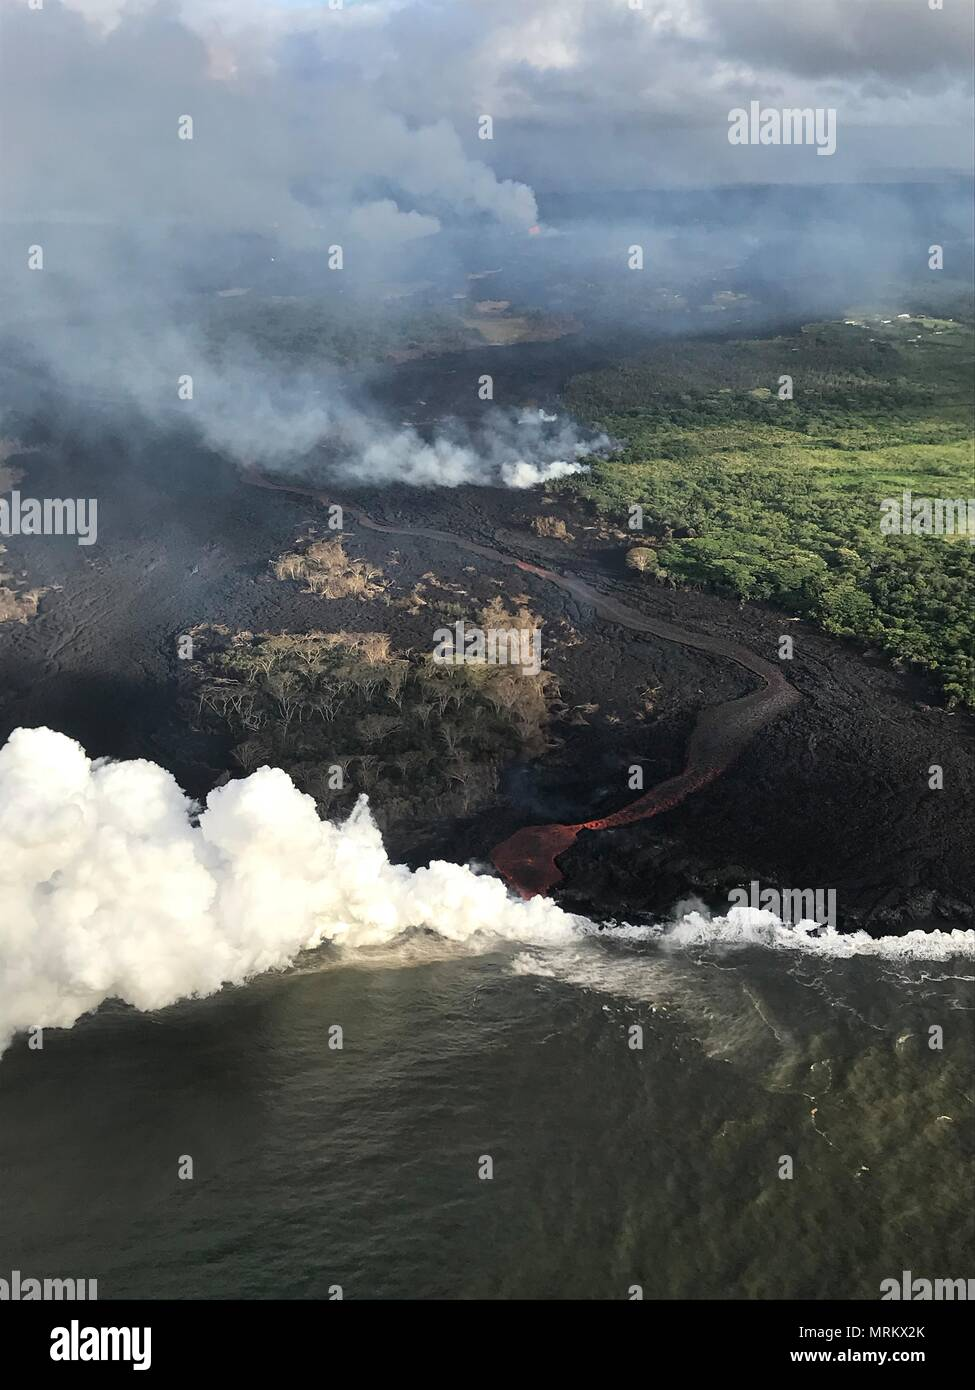 Lava and poisonous sulfur dioxide plumes rise as molten magma reaches the ocean from the eruption of the Kilauea volcano May 23, 2018 in Pahoa, Hawaii. Hot lava entering the ocean creates a dense white plume called 'laze' (short for 'lava haze'). Laze is formed as hot lava boils seawater to dryness. The process leads to a series of chemical reactions that create a billowing white cloud composed of a condensed seawater steam, hydrochloric acid gas, and tiny shards of volcanic glass. The cloud is as corrosive as dilute battery acid, and should be avoided. - Stock Image